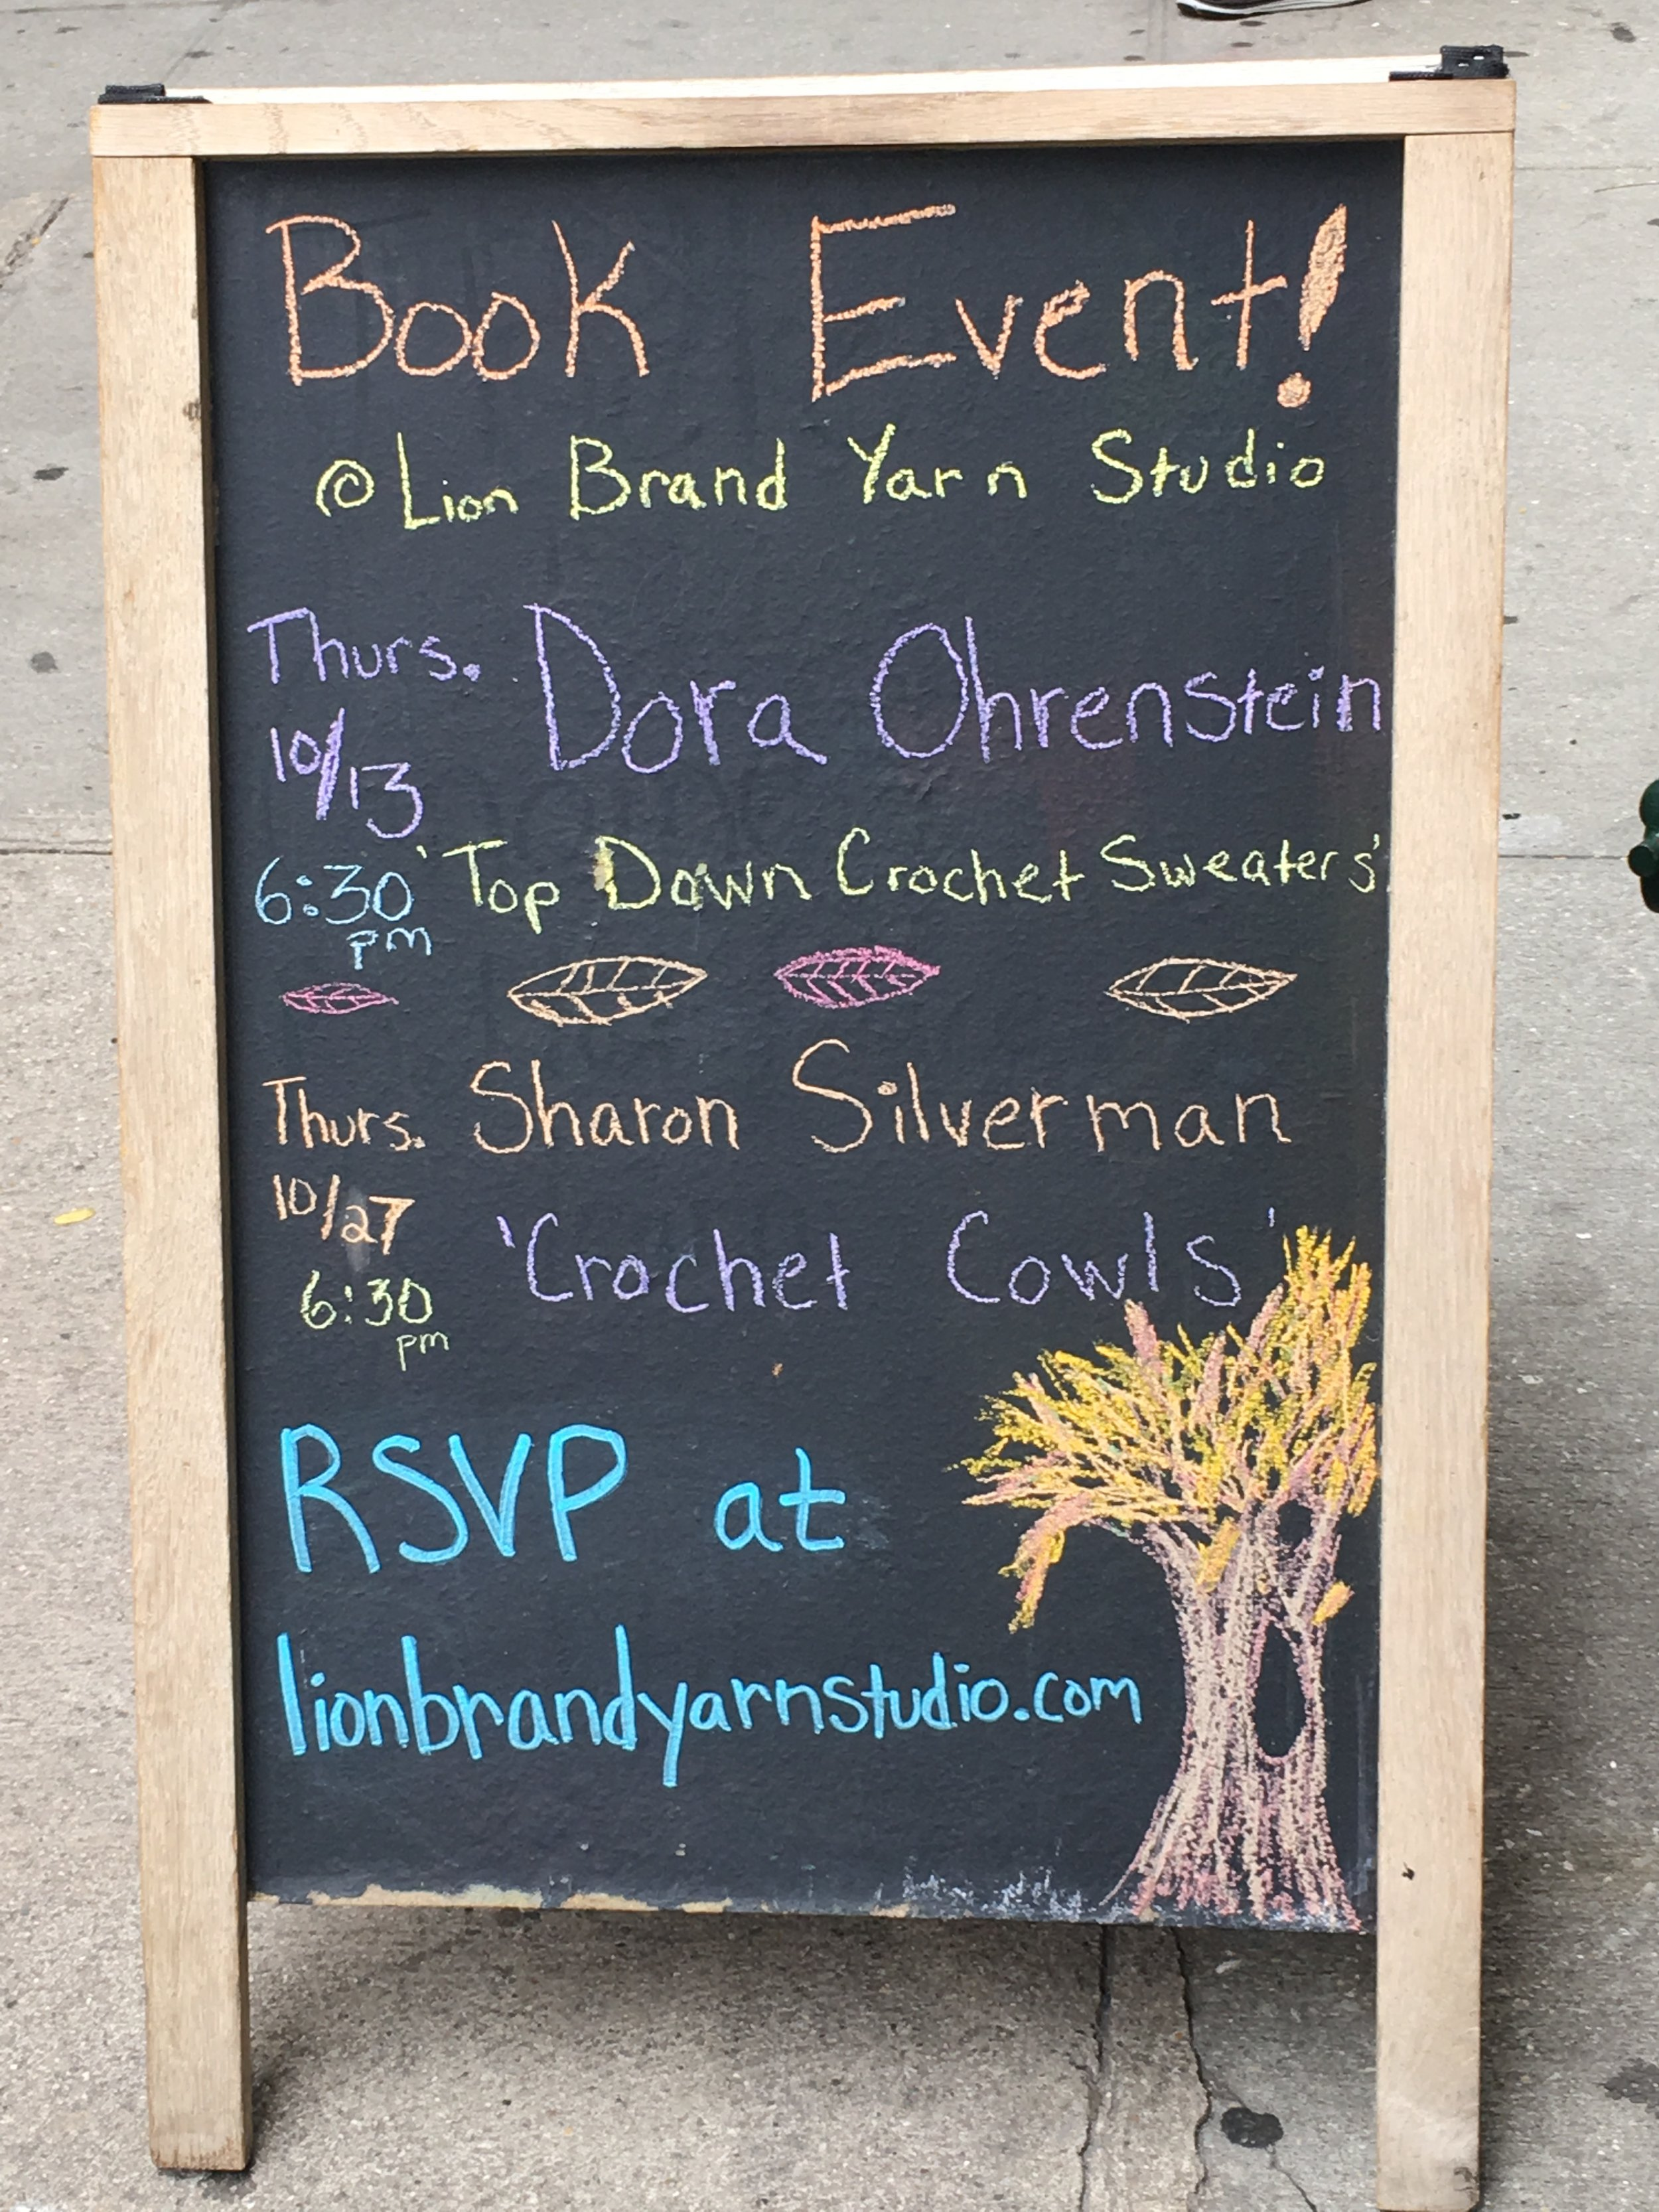 Honored to be mentioned with Dora Ohrenstein!